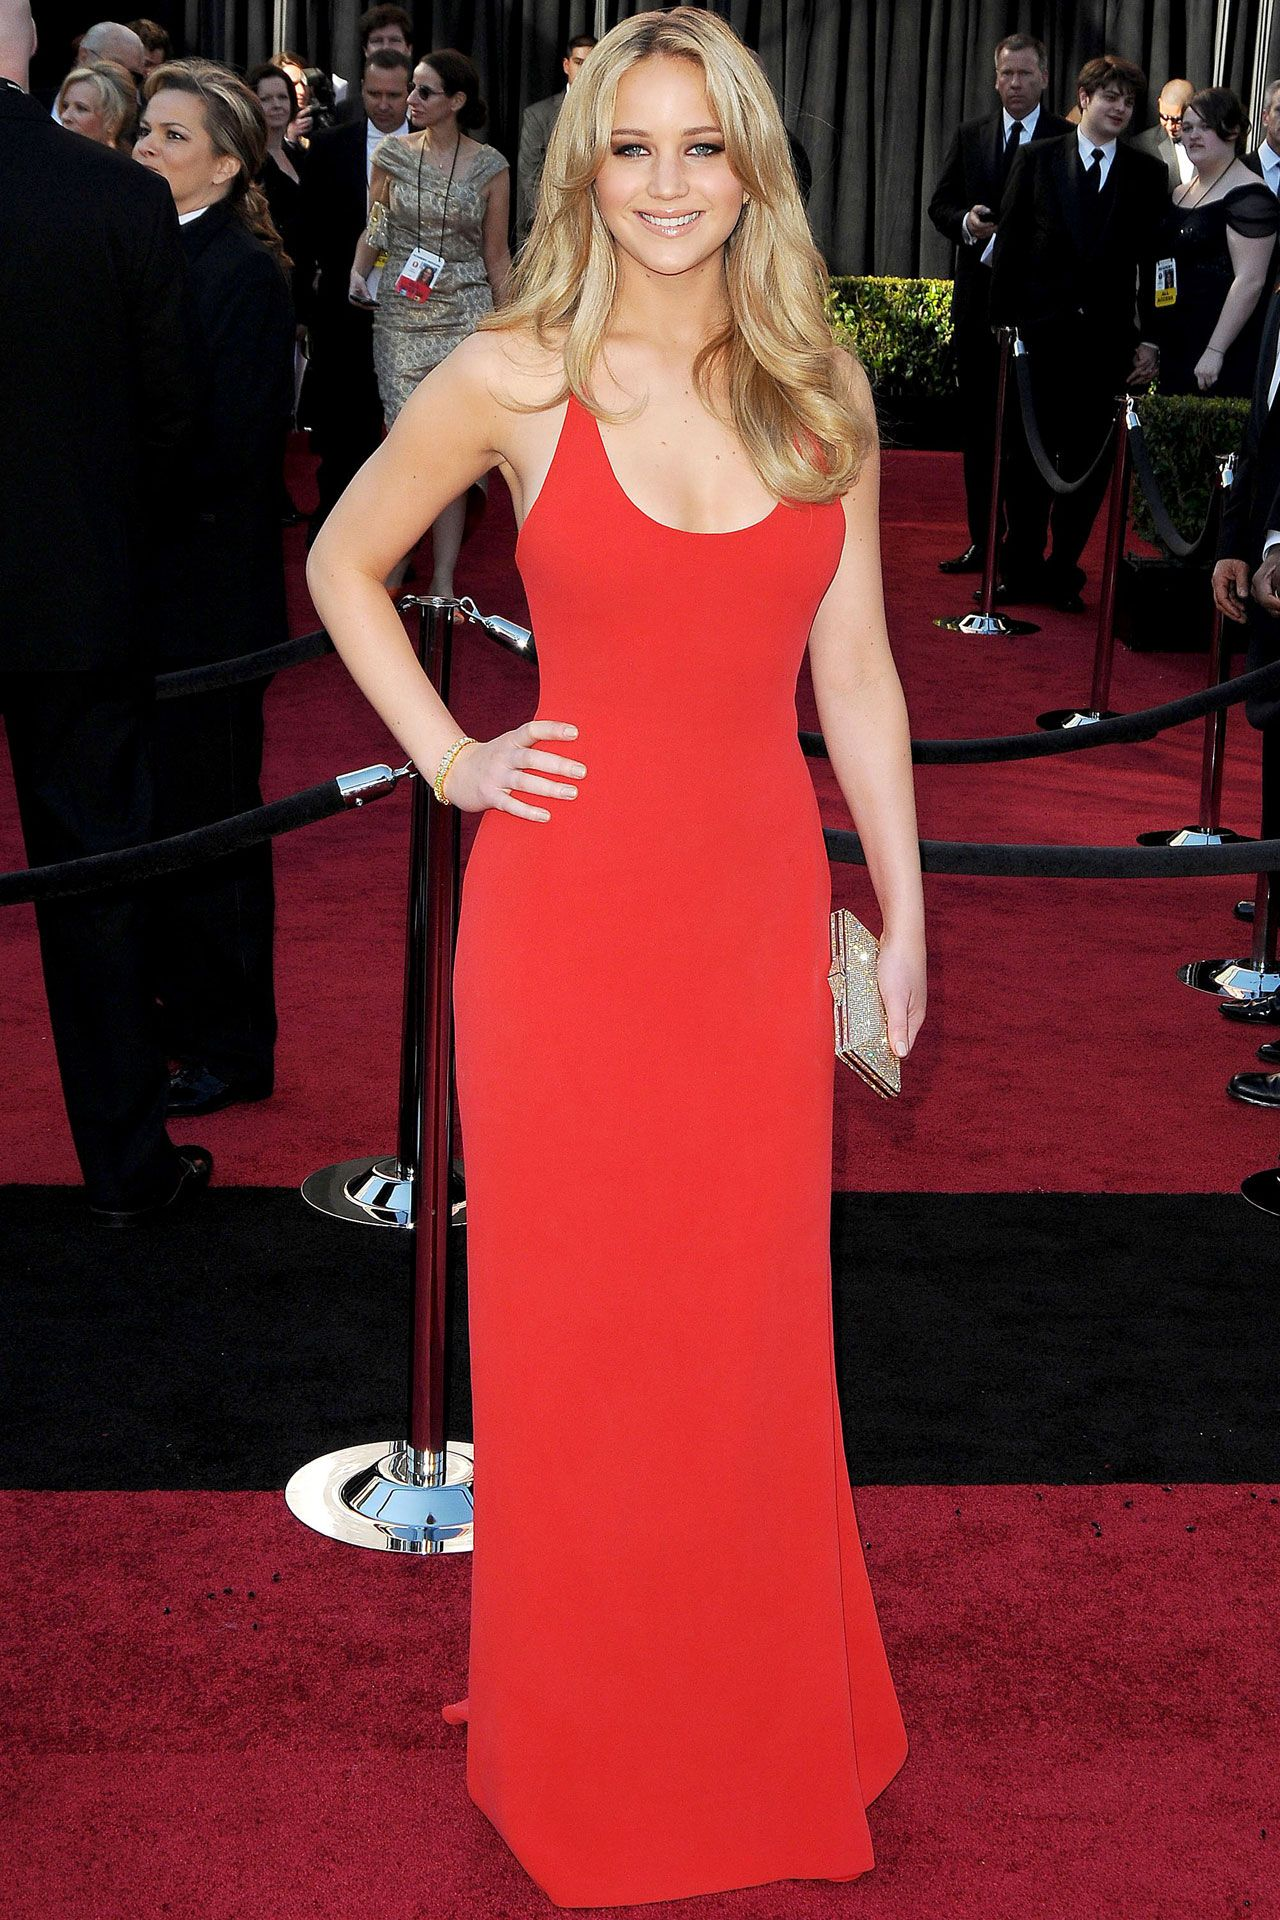 84f701b84f3 Actress Jennifer Lawrence in a scarlet Calvin Klein Collection dress at the  83rd Annual Academy Awards in Los Angeles.